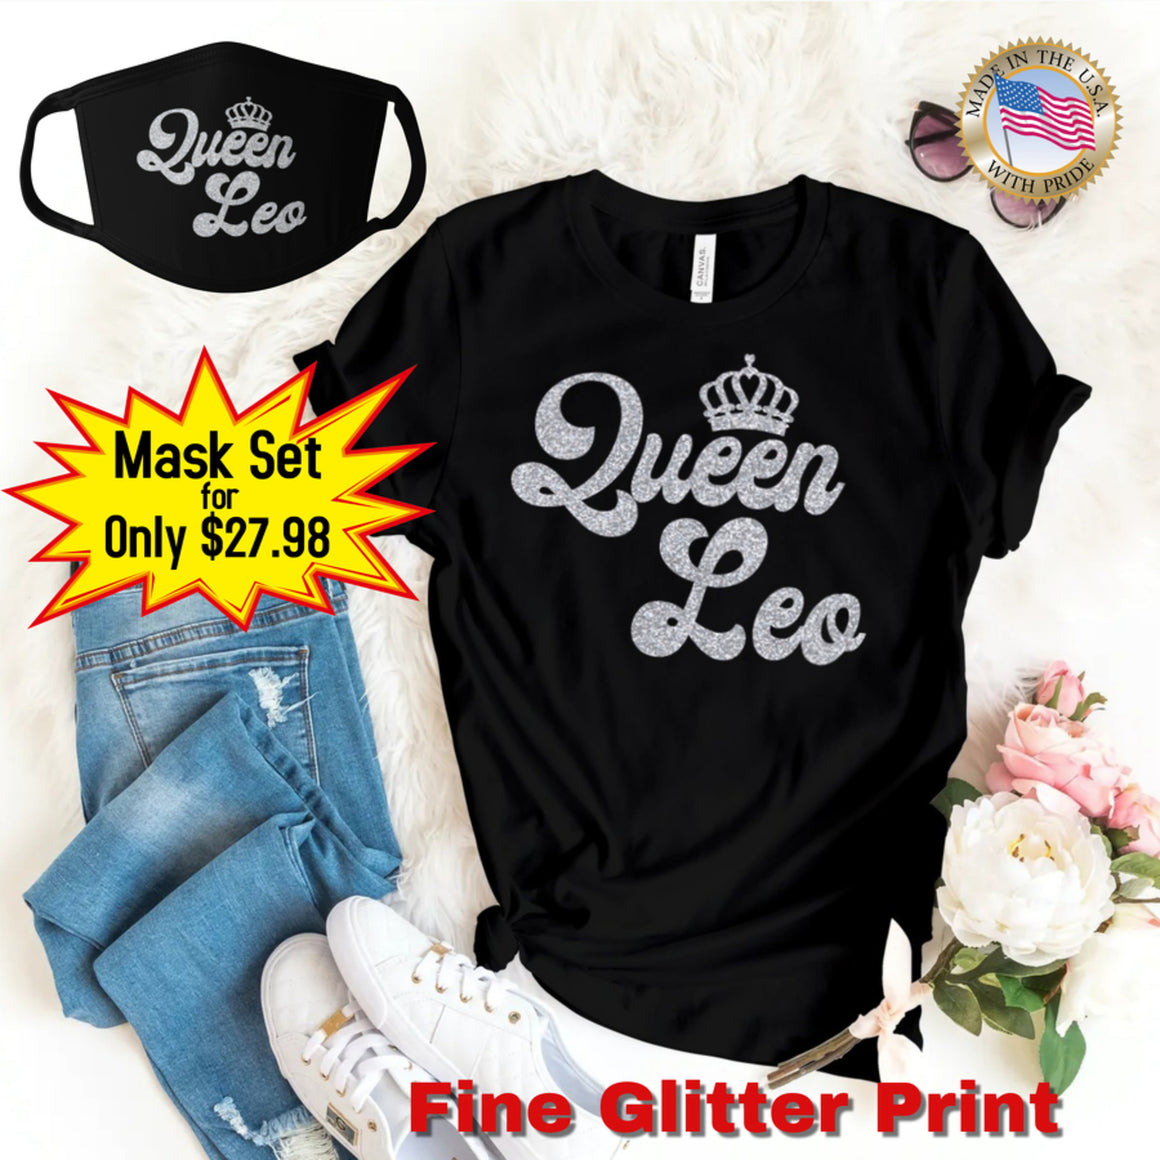 QUEEN LEO SILVER GLITTER T-SHIRT AND FACE MASK SET - Gray's Active Wear Printing